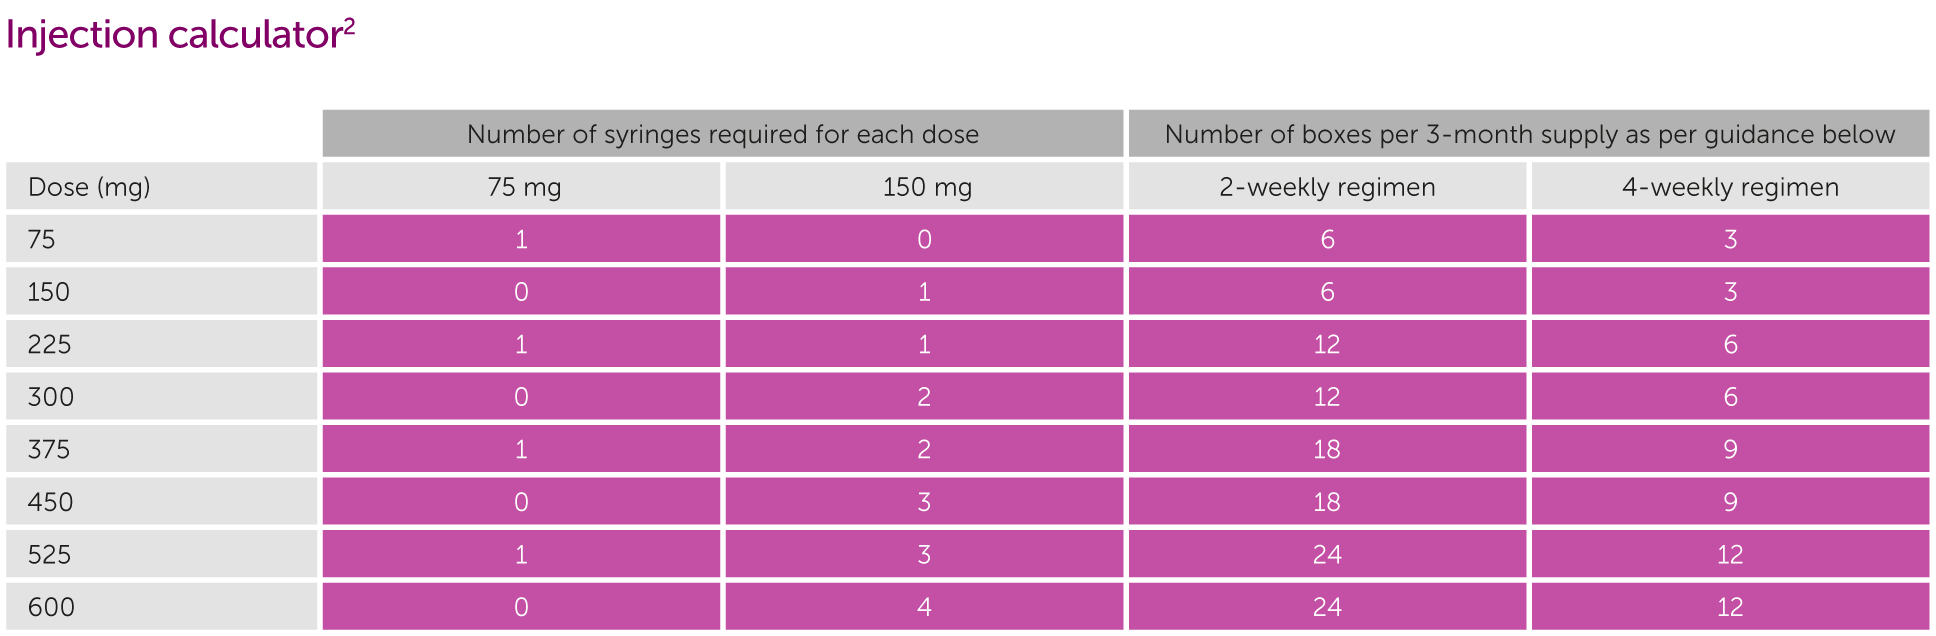 Table showing the number of injections required for each dose of Xolair